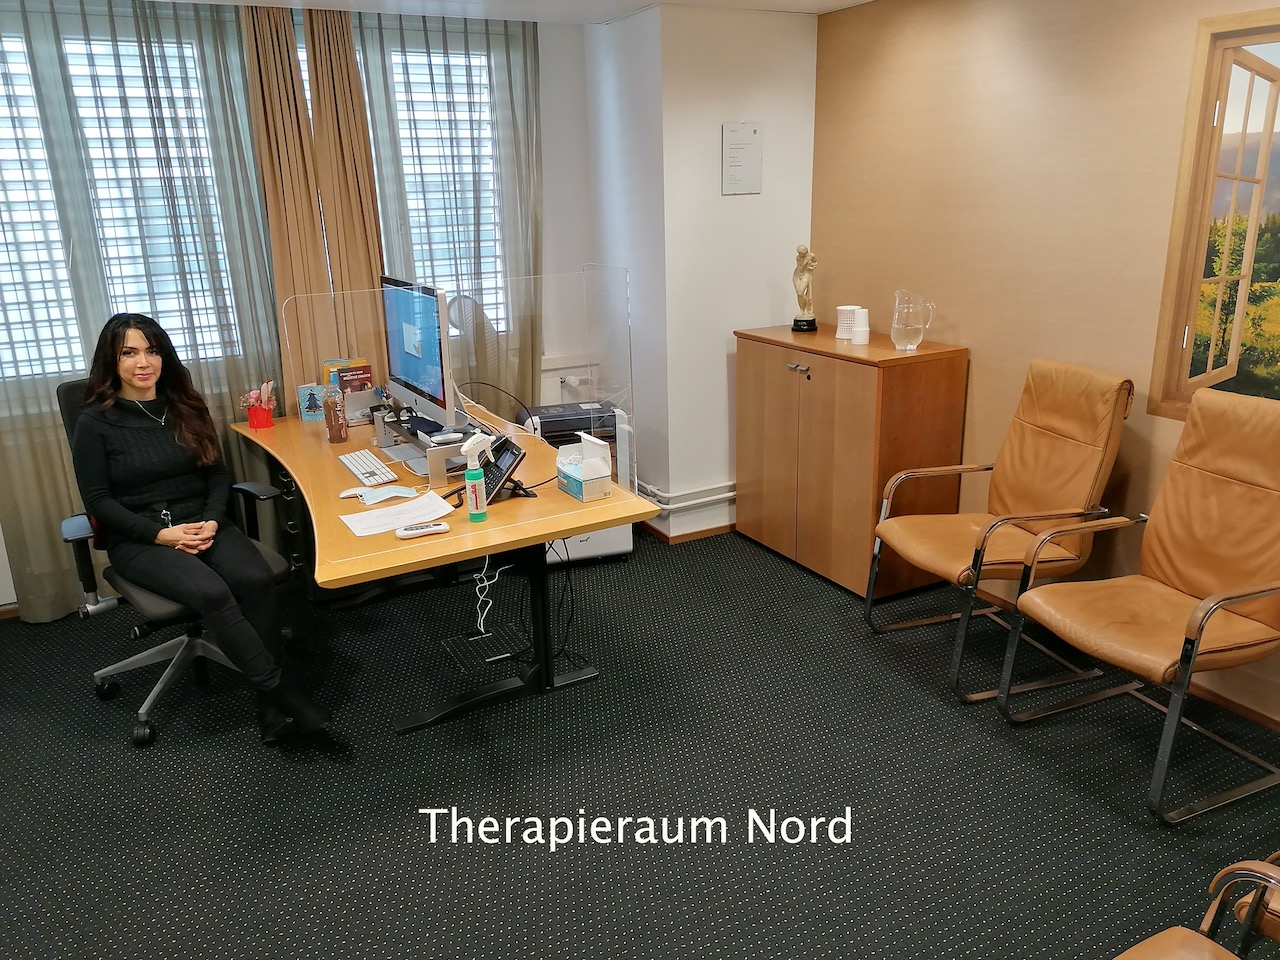 Therapieraum Nord